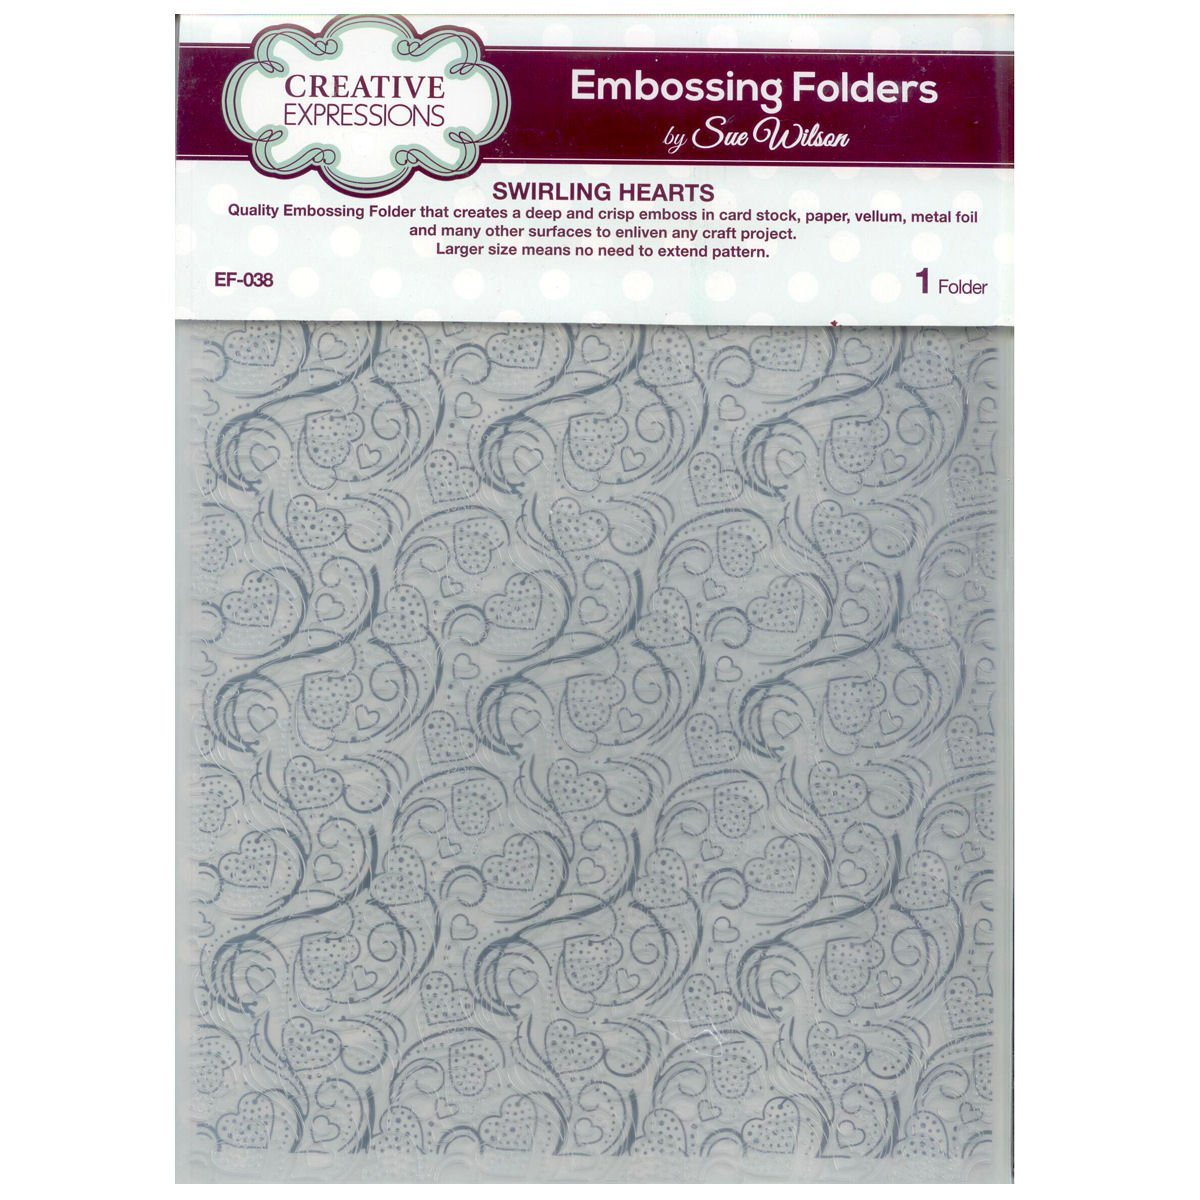 Lifestyle crafts embossing folders - Creative Expressions Swirling Hearts A4 Embossing Folder Ef 038 Sue Wilson Amazon Co Uk Kitchen Home